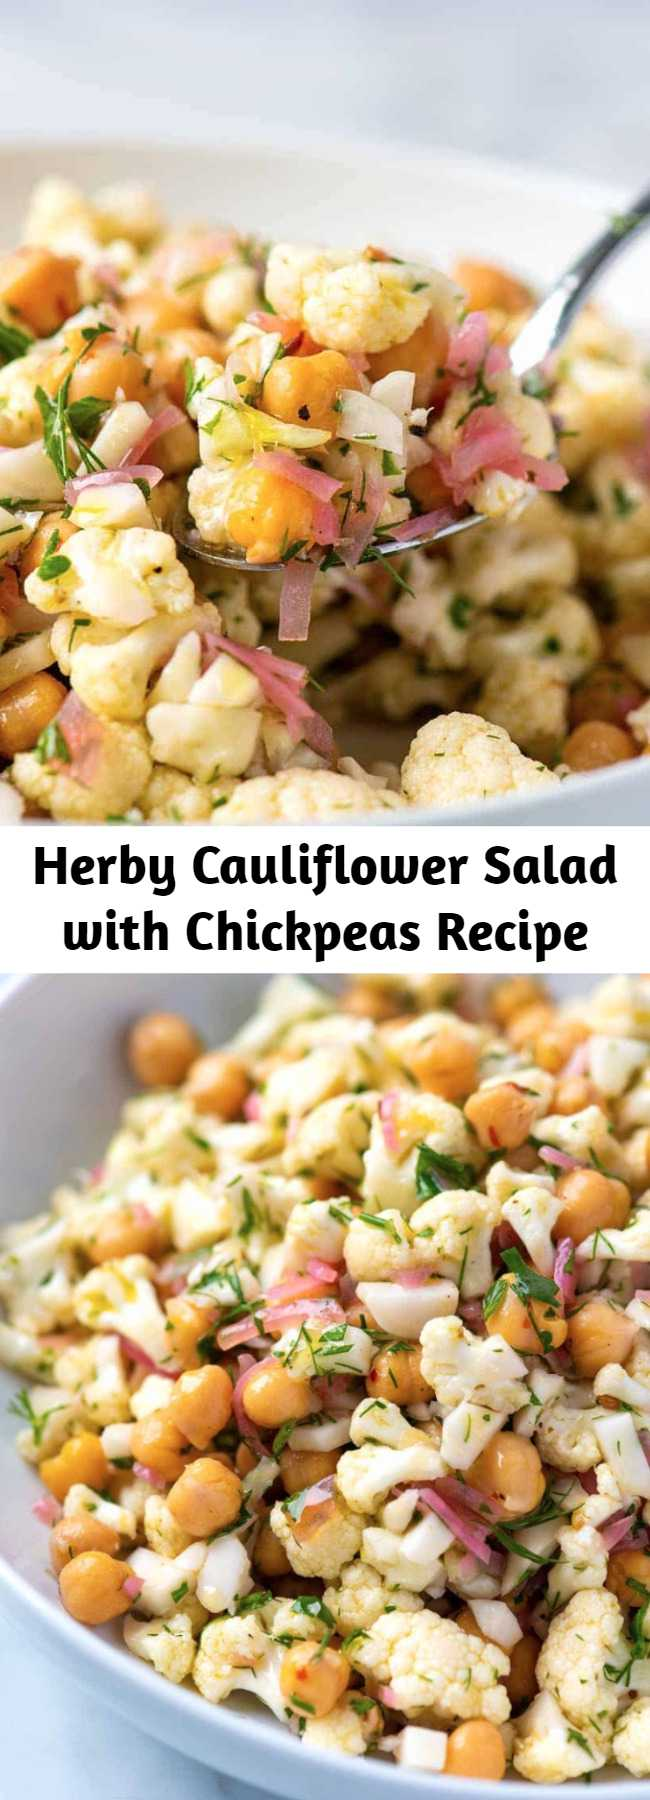 Herby Cauliflower Salad with Chickpeas Recipe - hanks to a light lemony dressing and lots of fresh herbs, this simple raw cauliflower salad recipe tastes surprisingly delicious and lasts in the fridge for days. The pickled onions are an optional ingredient, but they do take the salad to the next level.